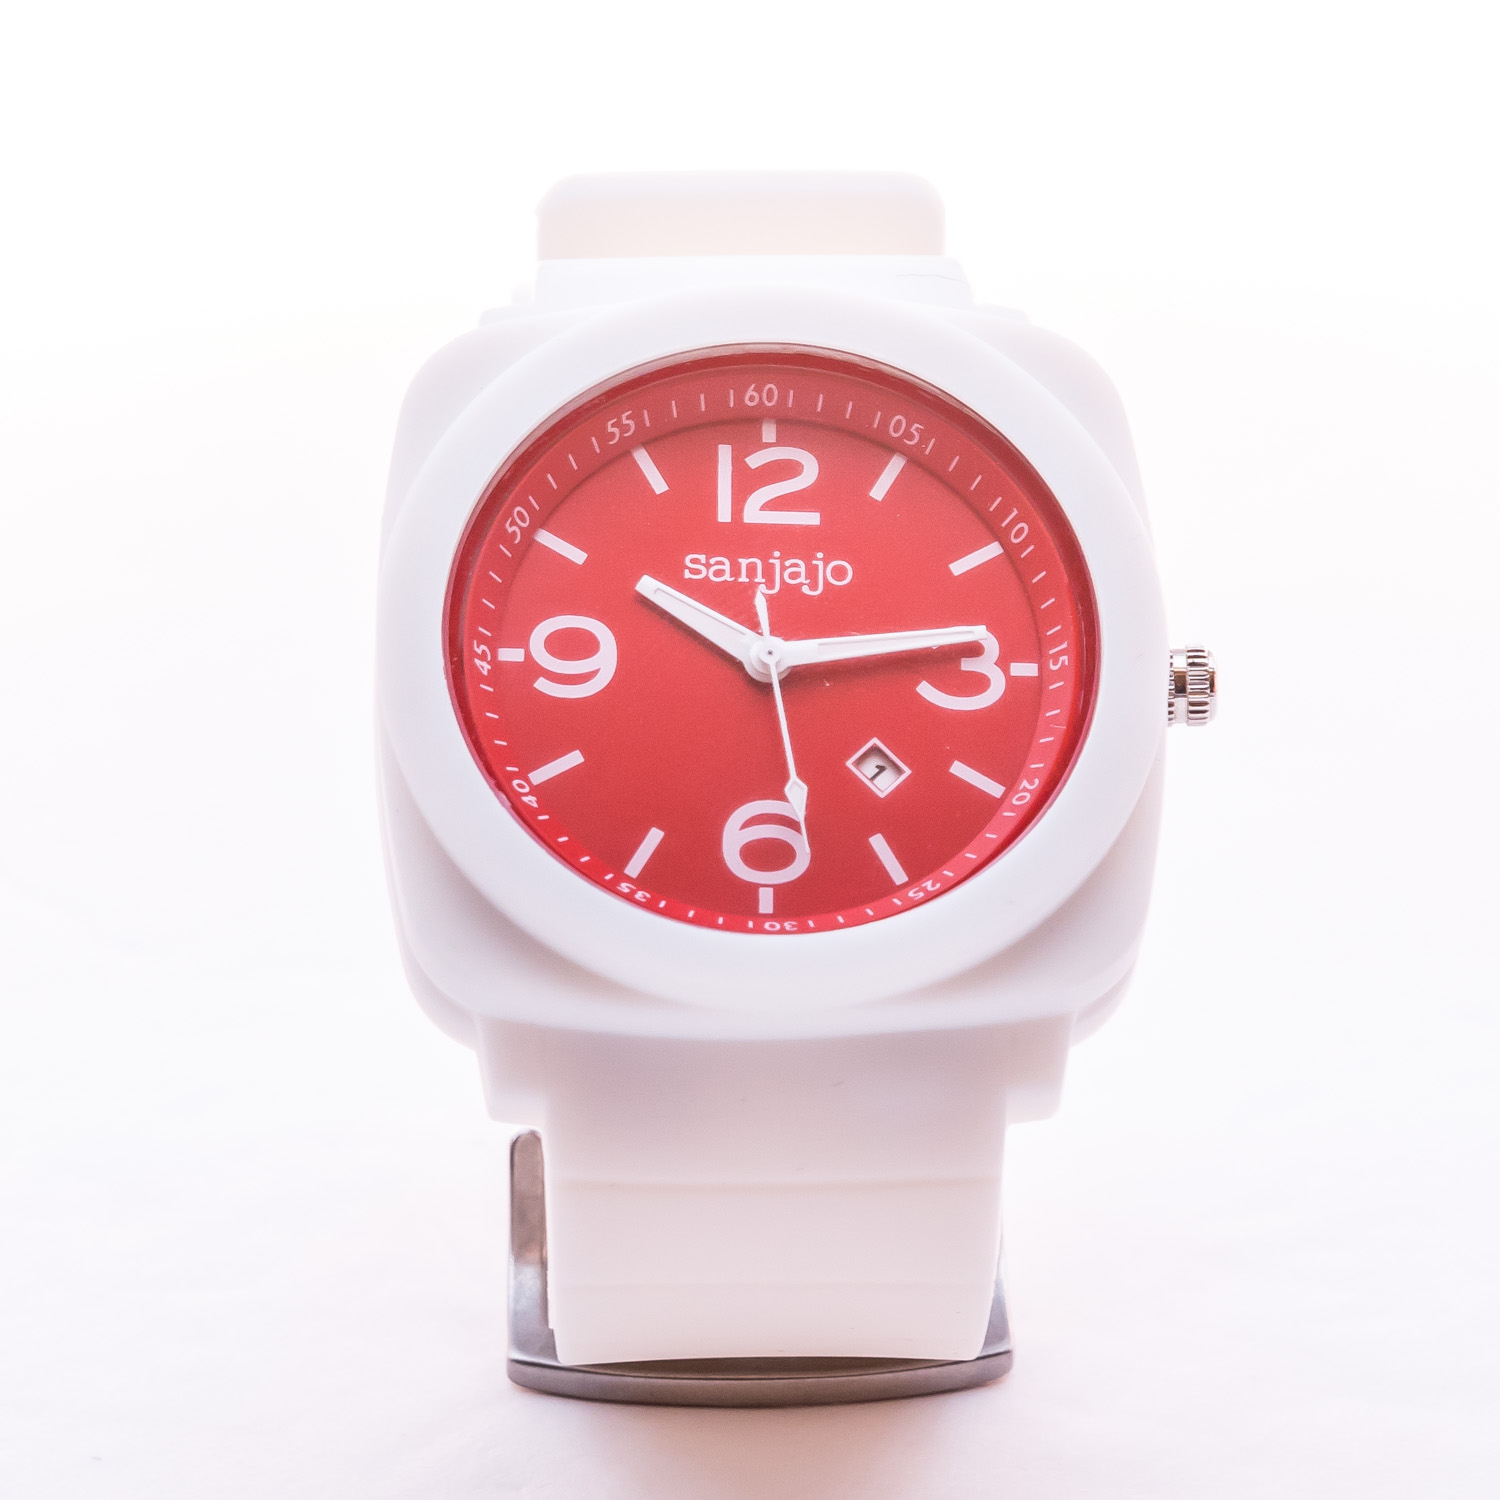 Sanjajo - Peruvian White-Red Patriot Watch